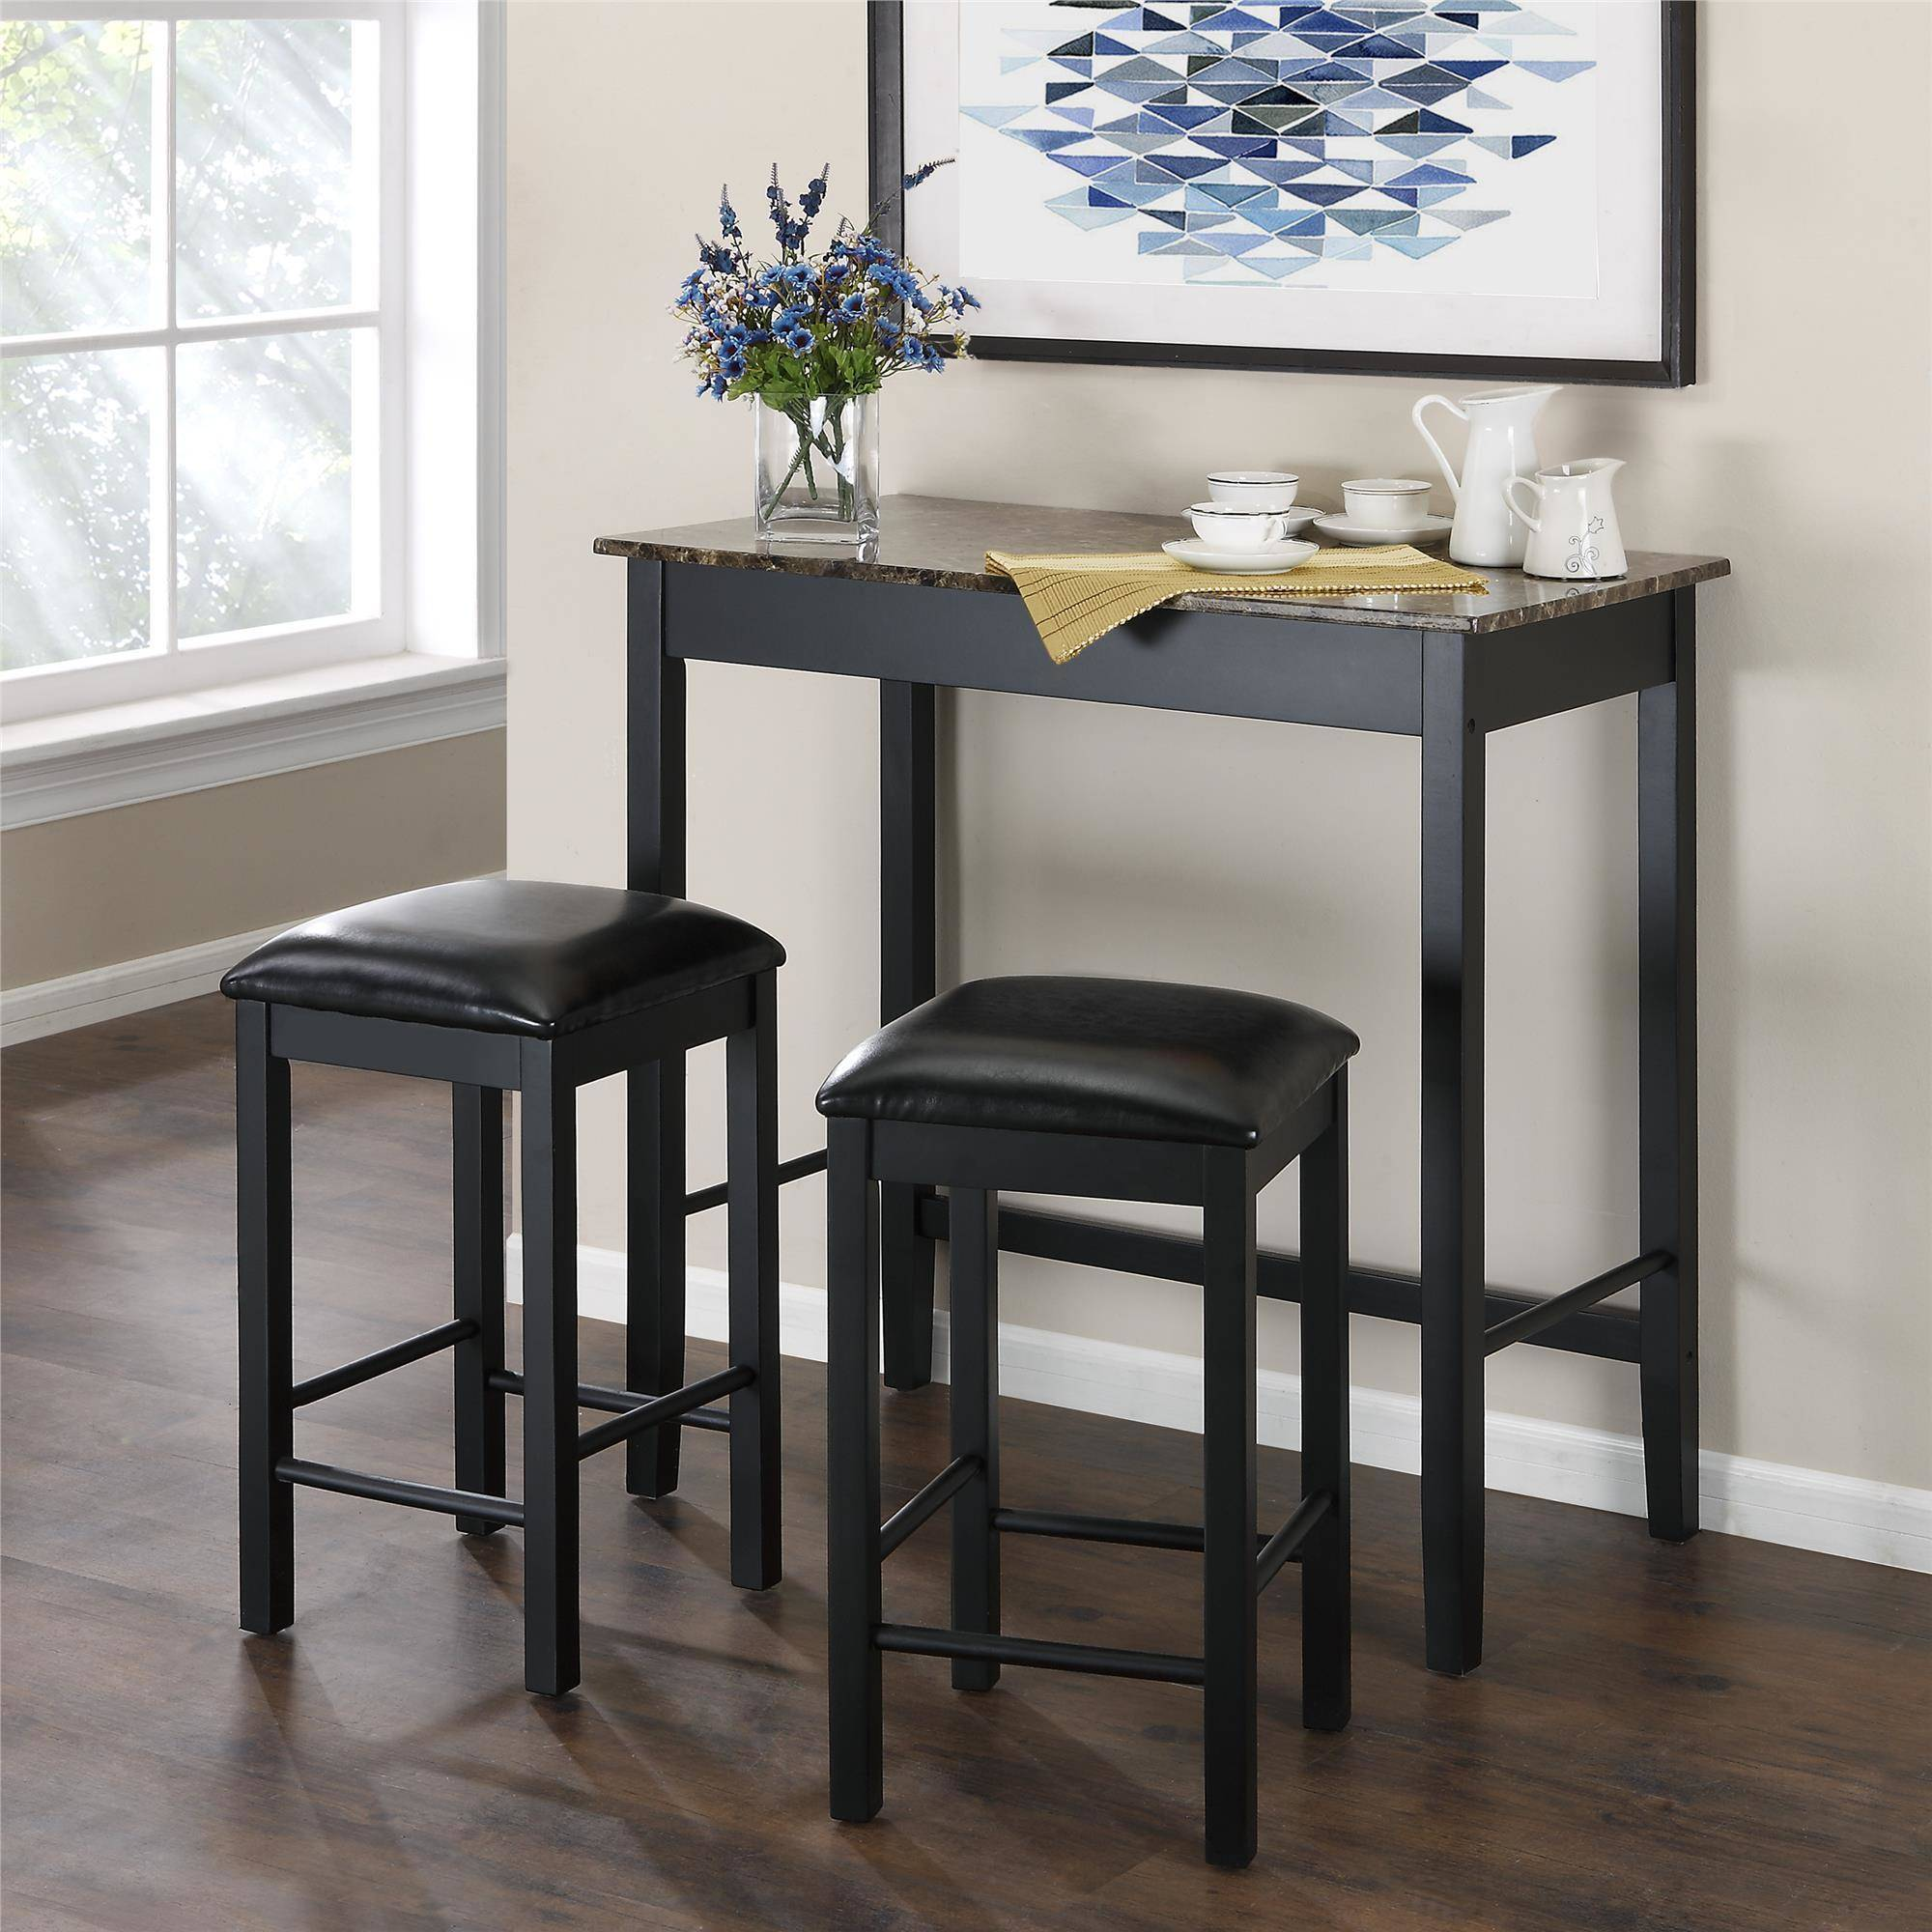 Chair Furniture S kitchen & dining furniture - walmart